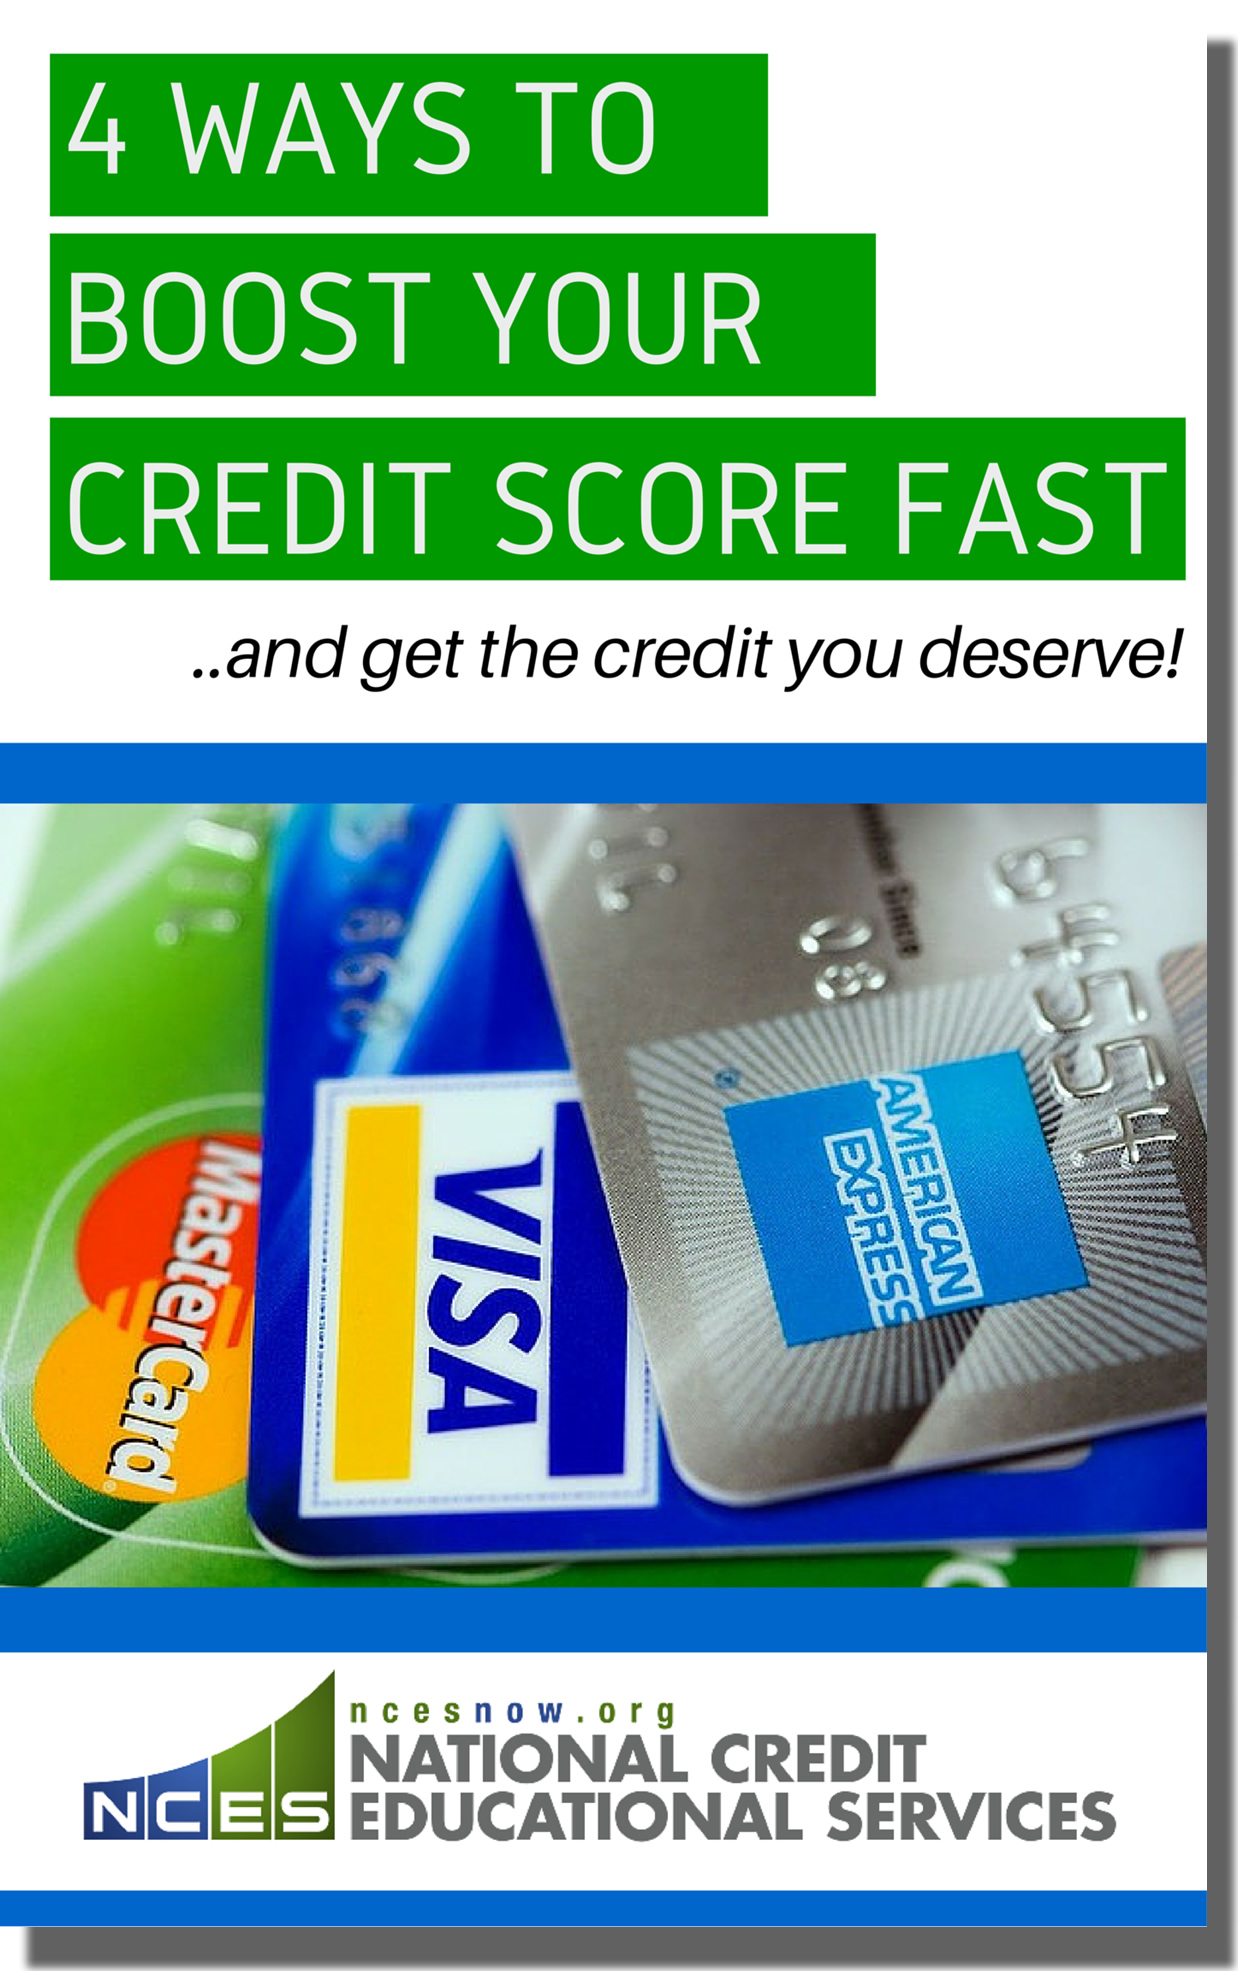 Boost Your Credit Score Cover Image